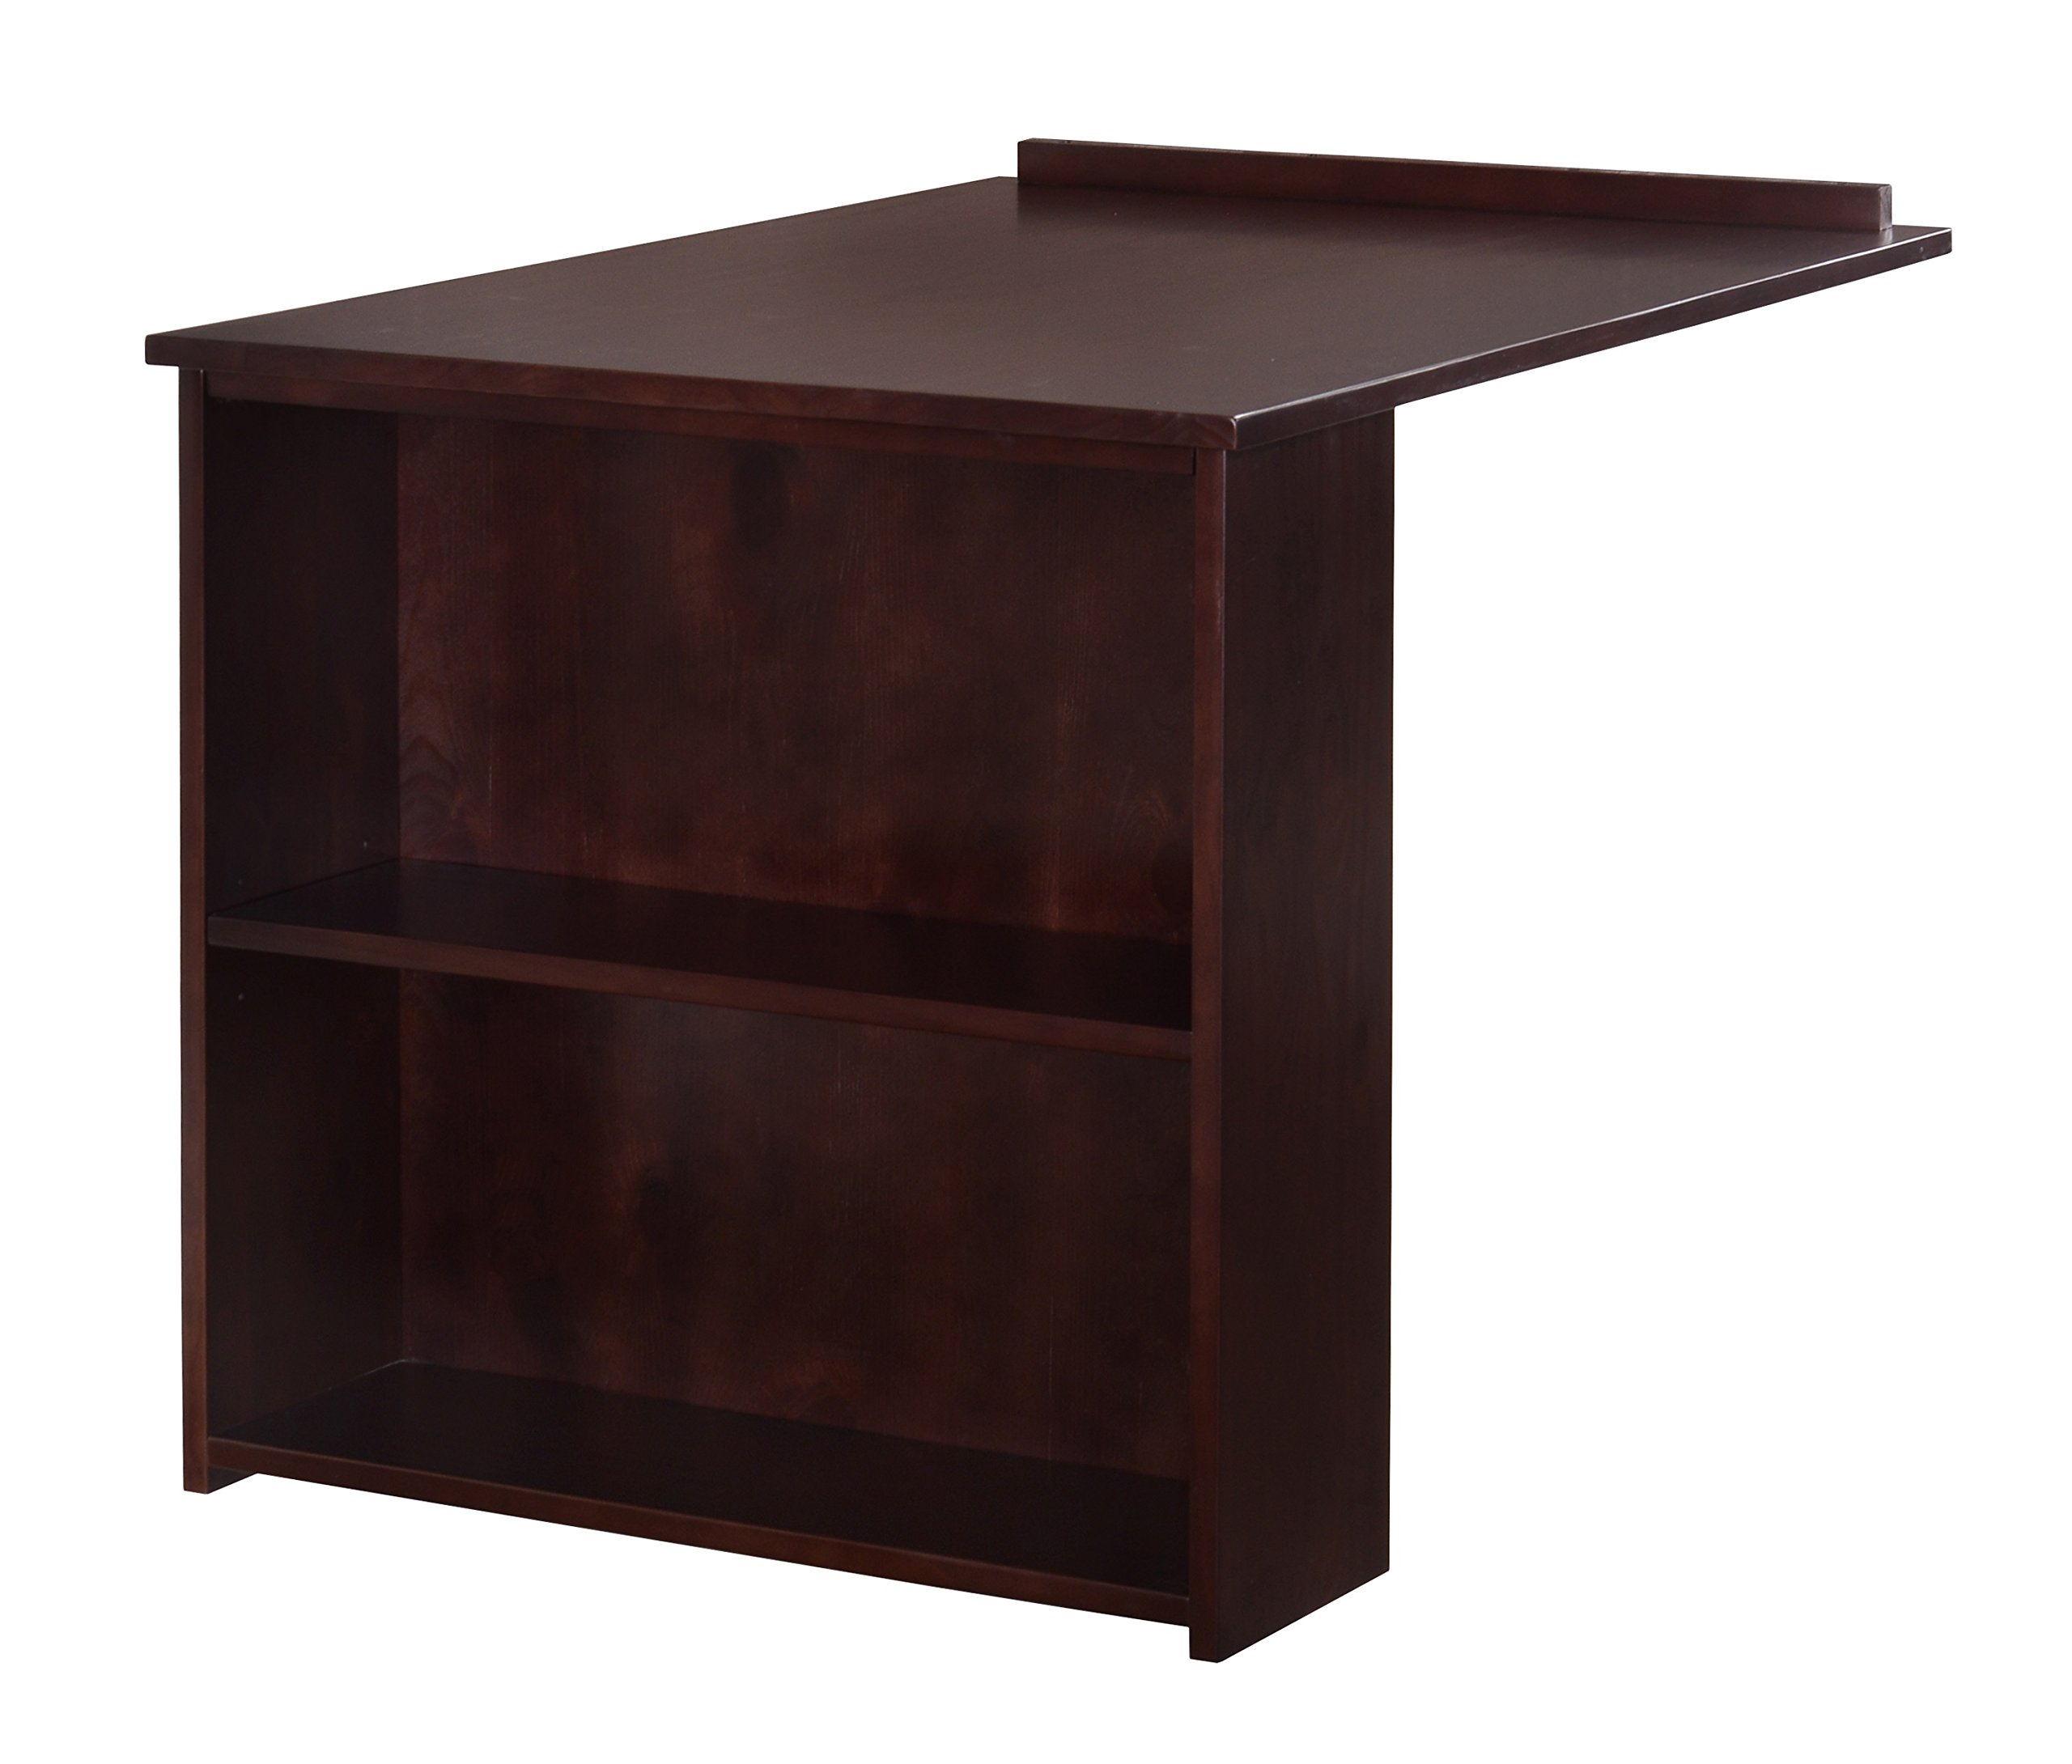 Whistler Junior Slide Out Desk - Espresso